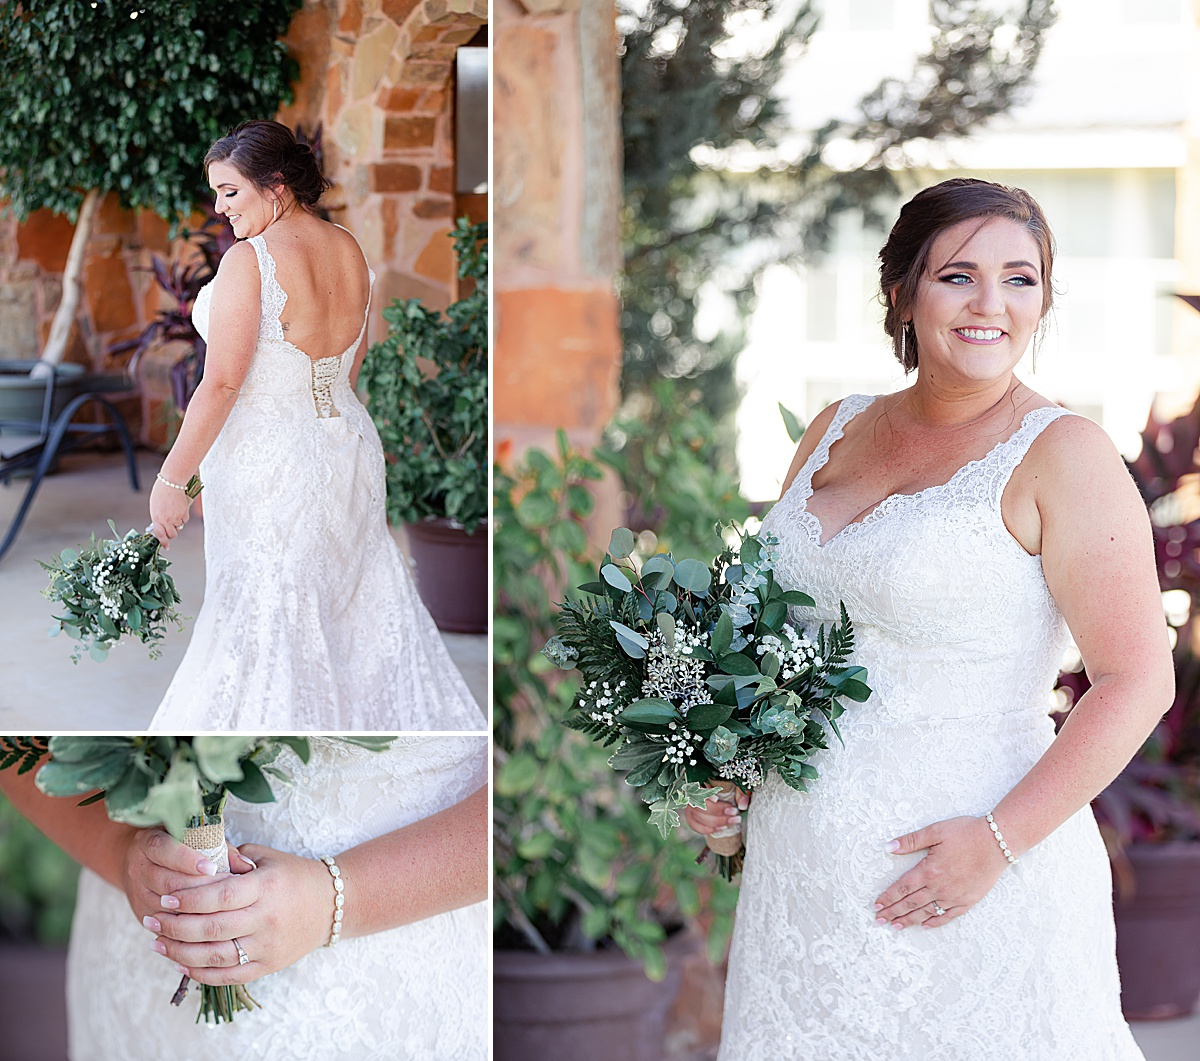 Rustic-Texas-Wedding-Hollow-Creek-Ranch-Carly-Barton-Photography_0147.jpg